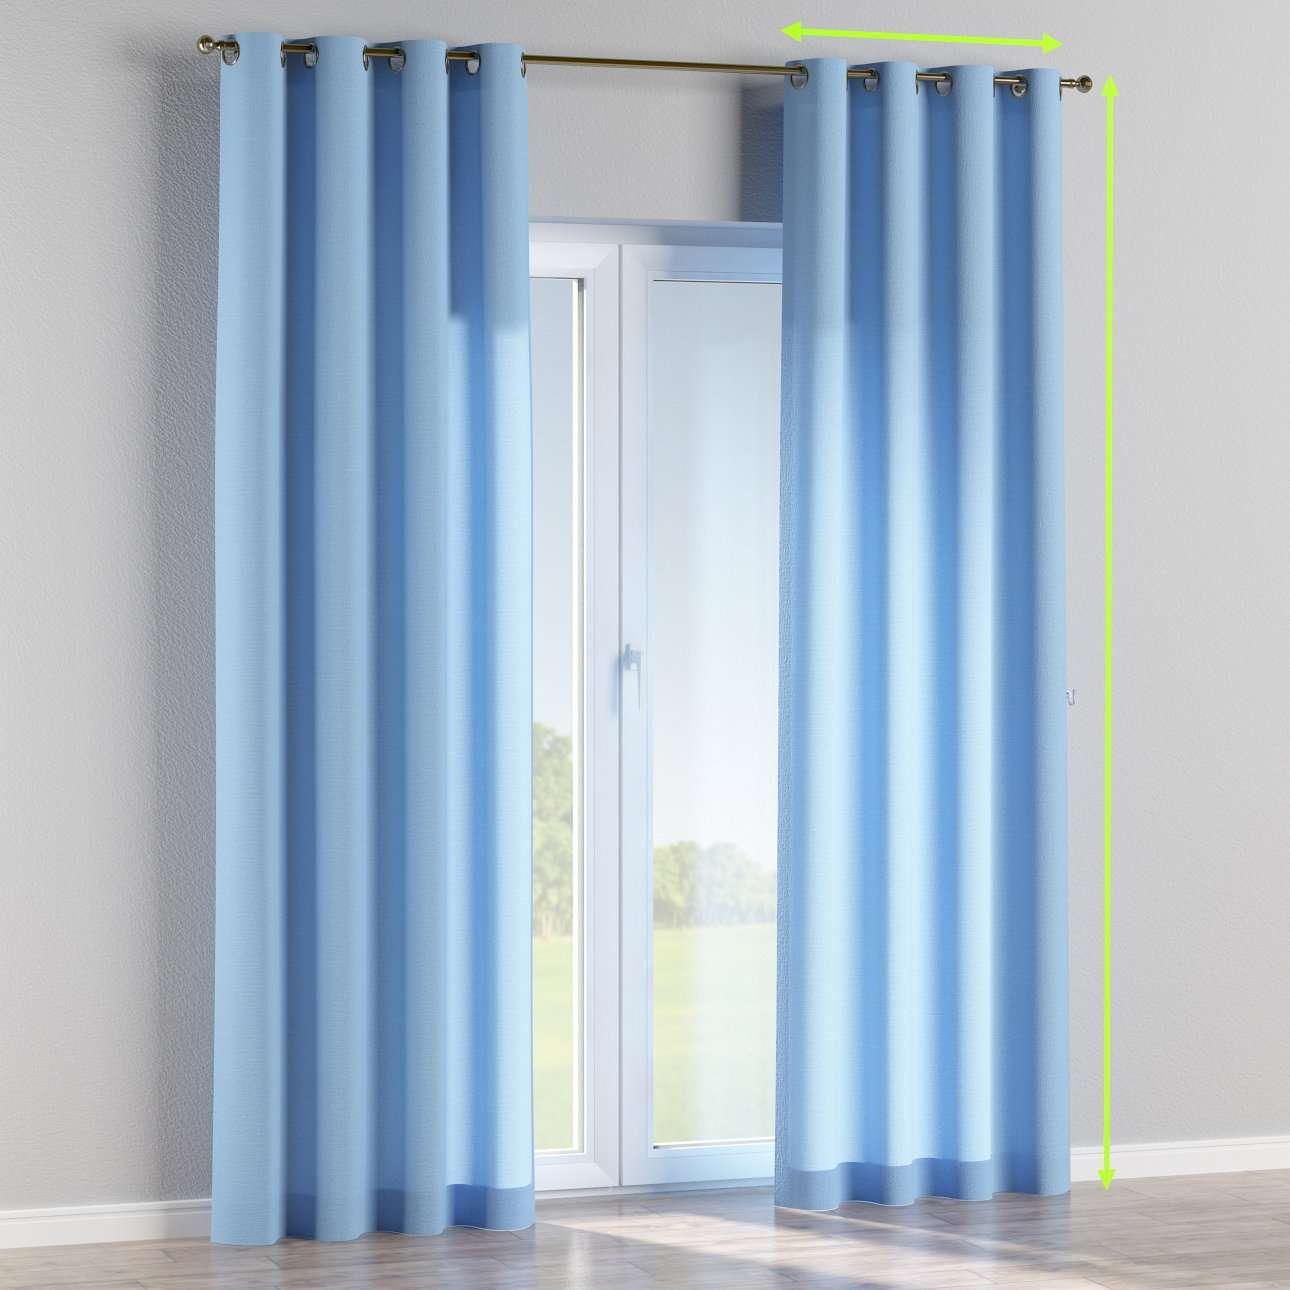 Eyelet lined curtains in collection Loneta , fabric: 133-21